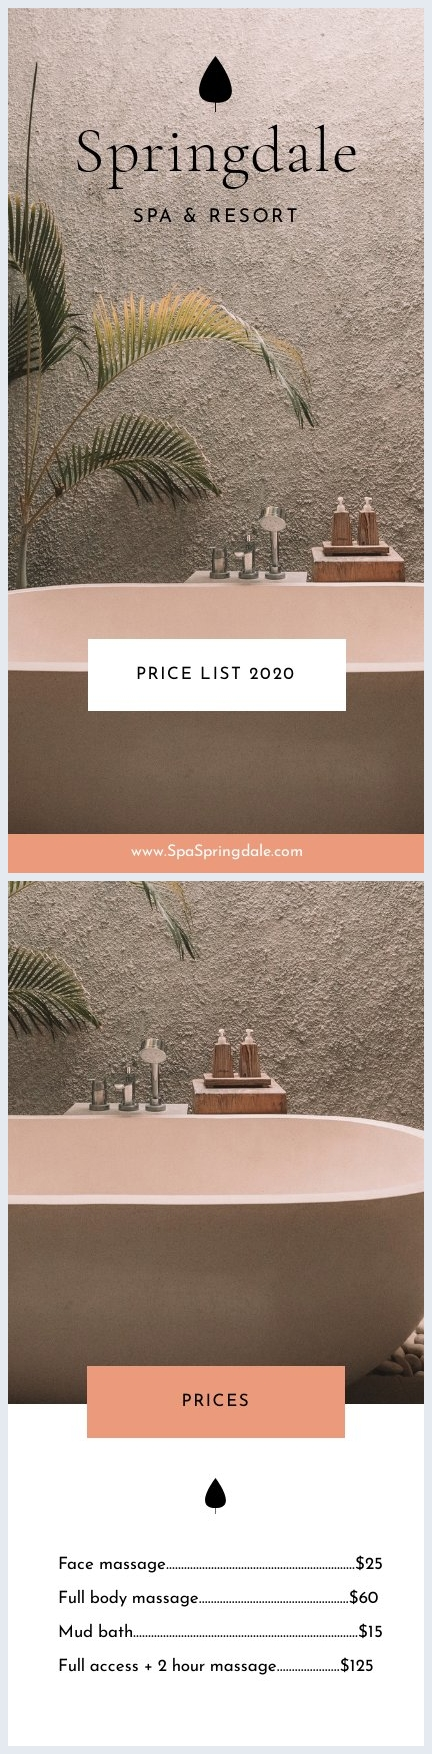 Spa Price List Design Example